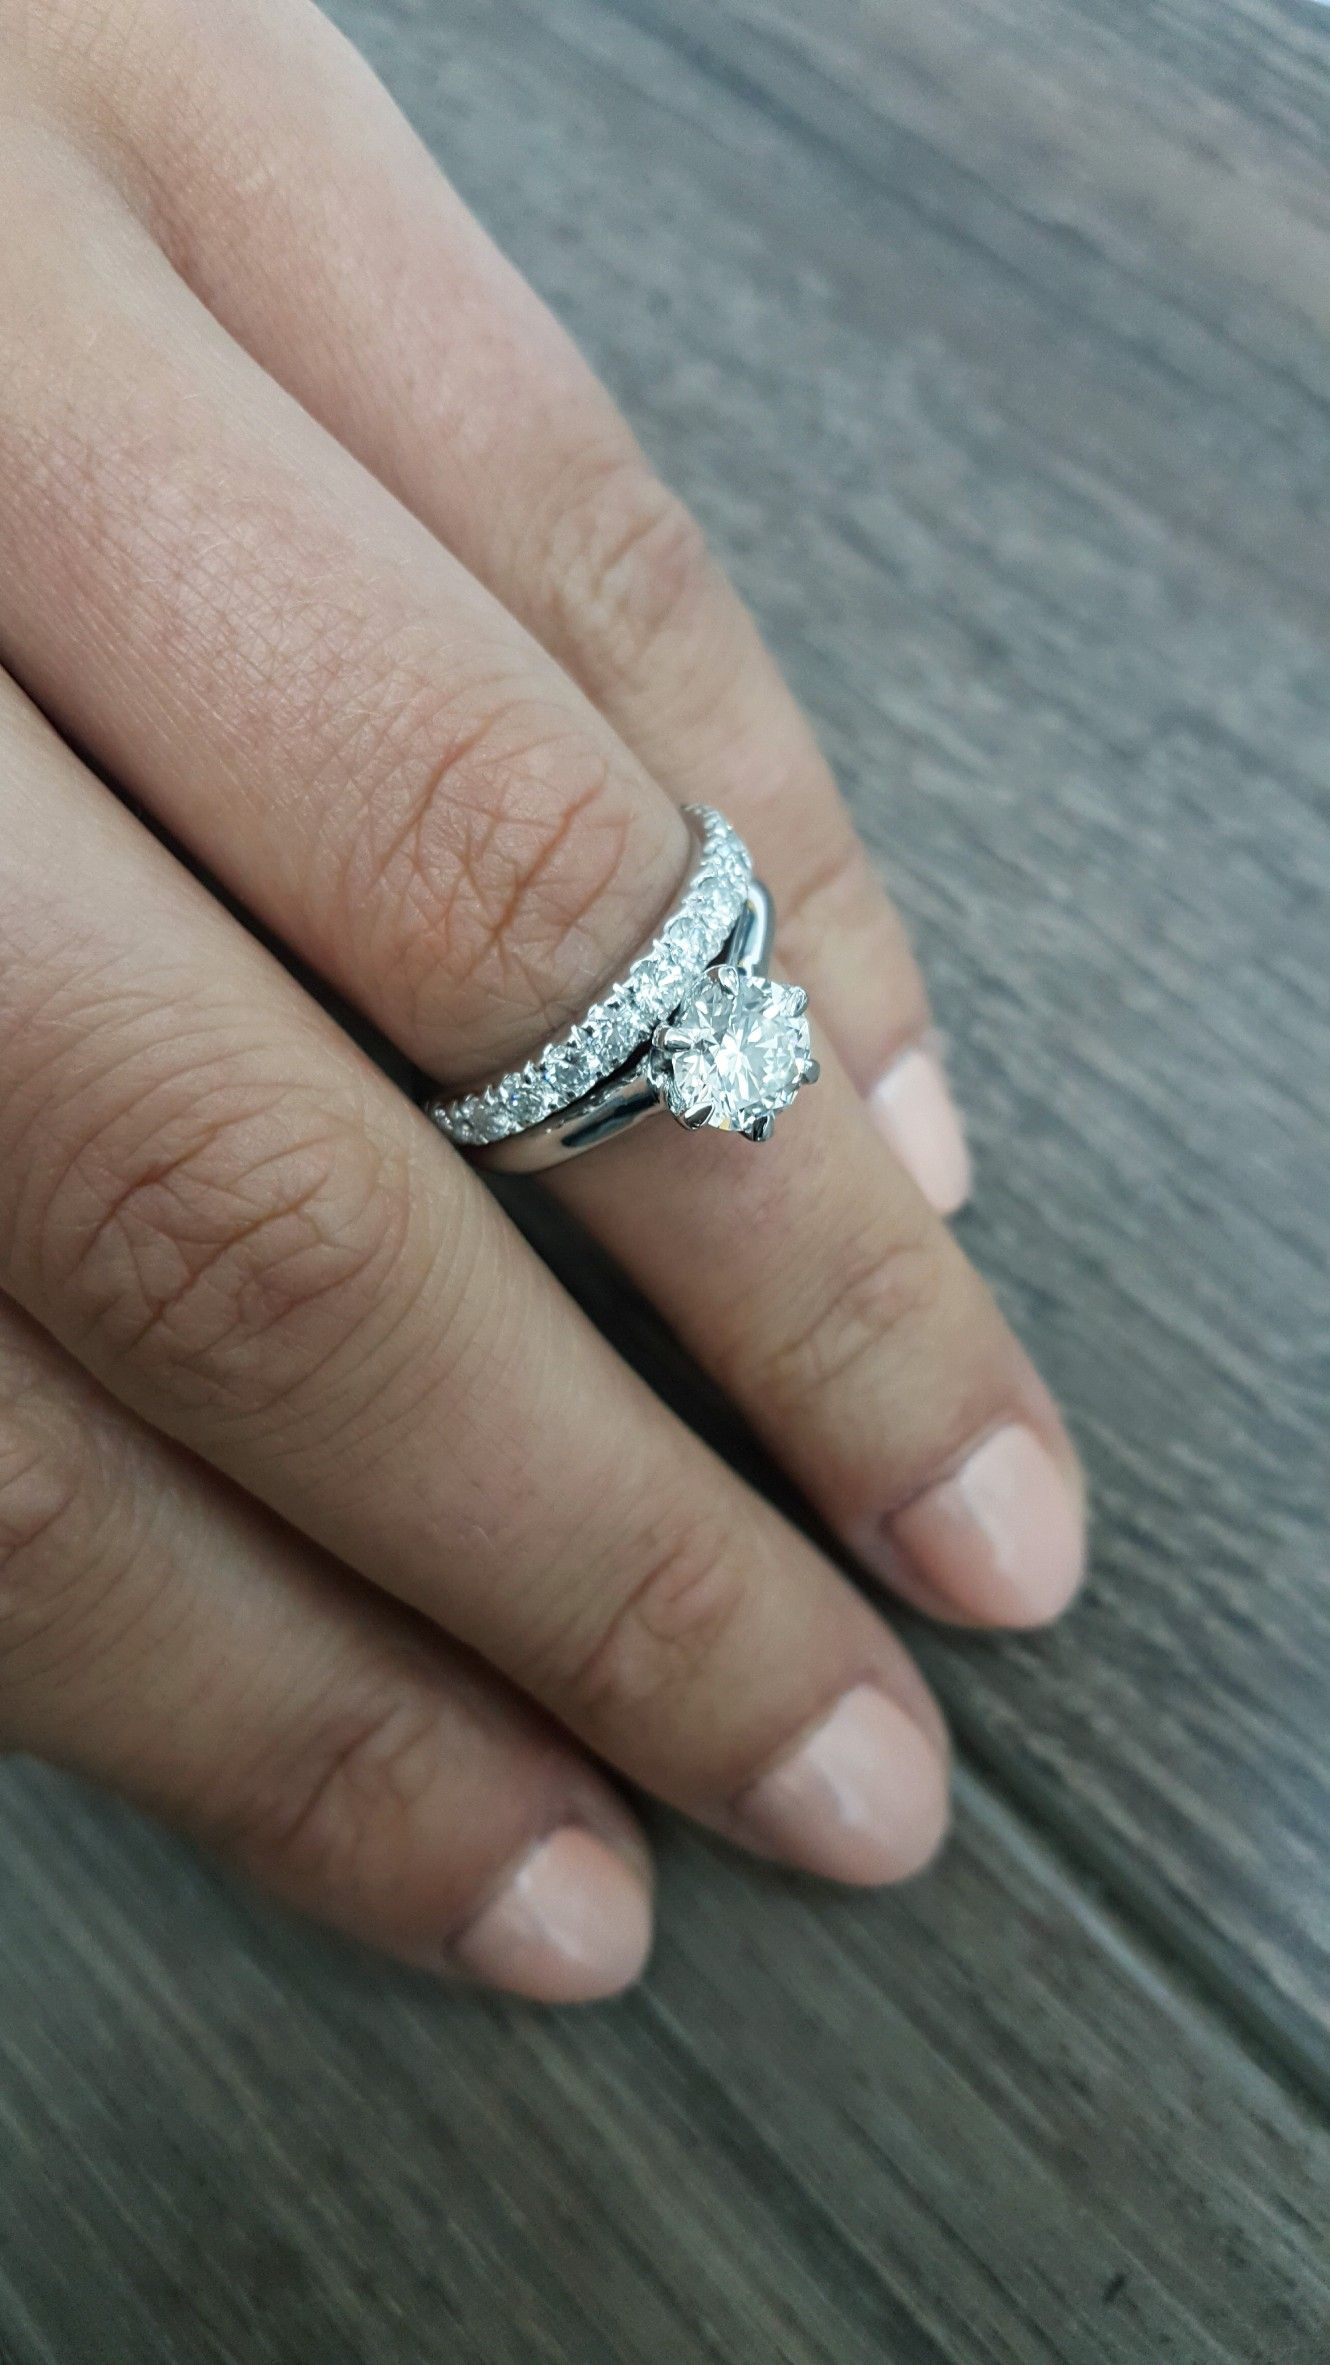 Matching Diamond Rings Round Solitaire Engagement Ring And Eternity Wedding Band: Cool Round Wedding Rings At Websimilar.org